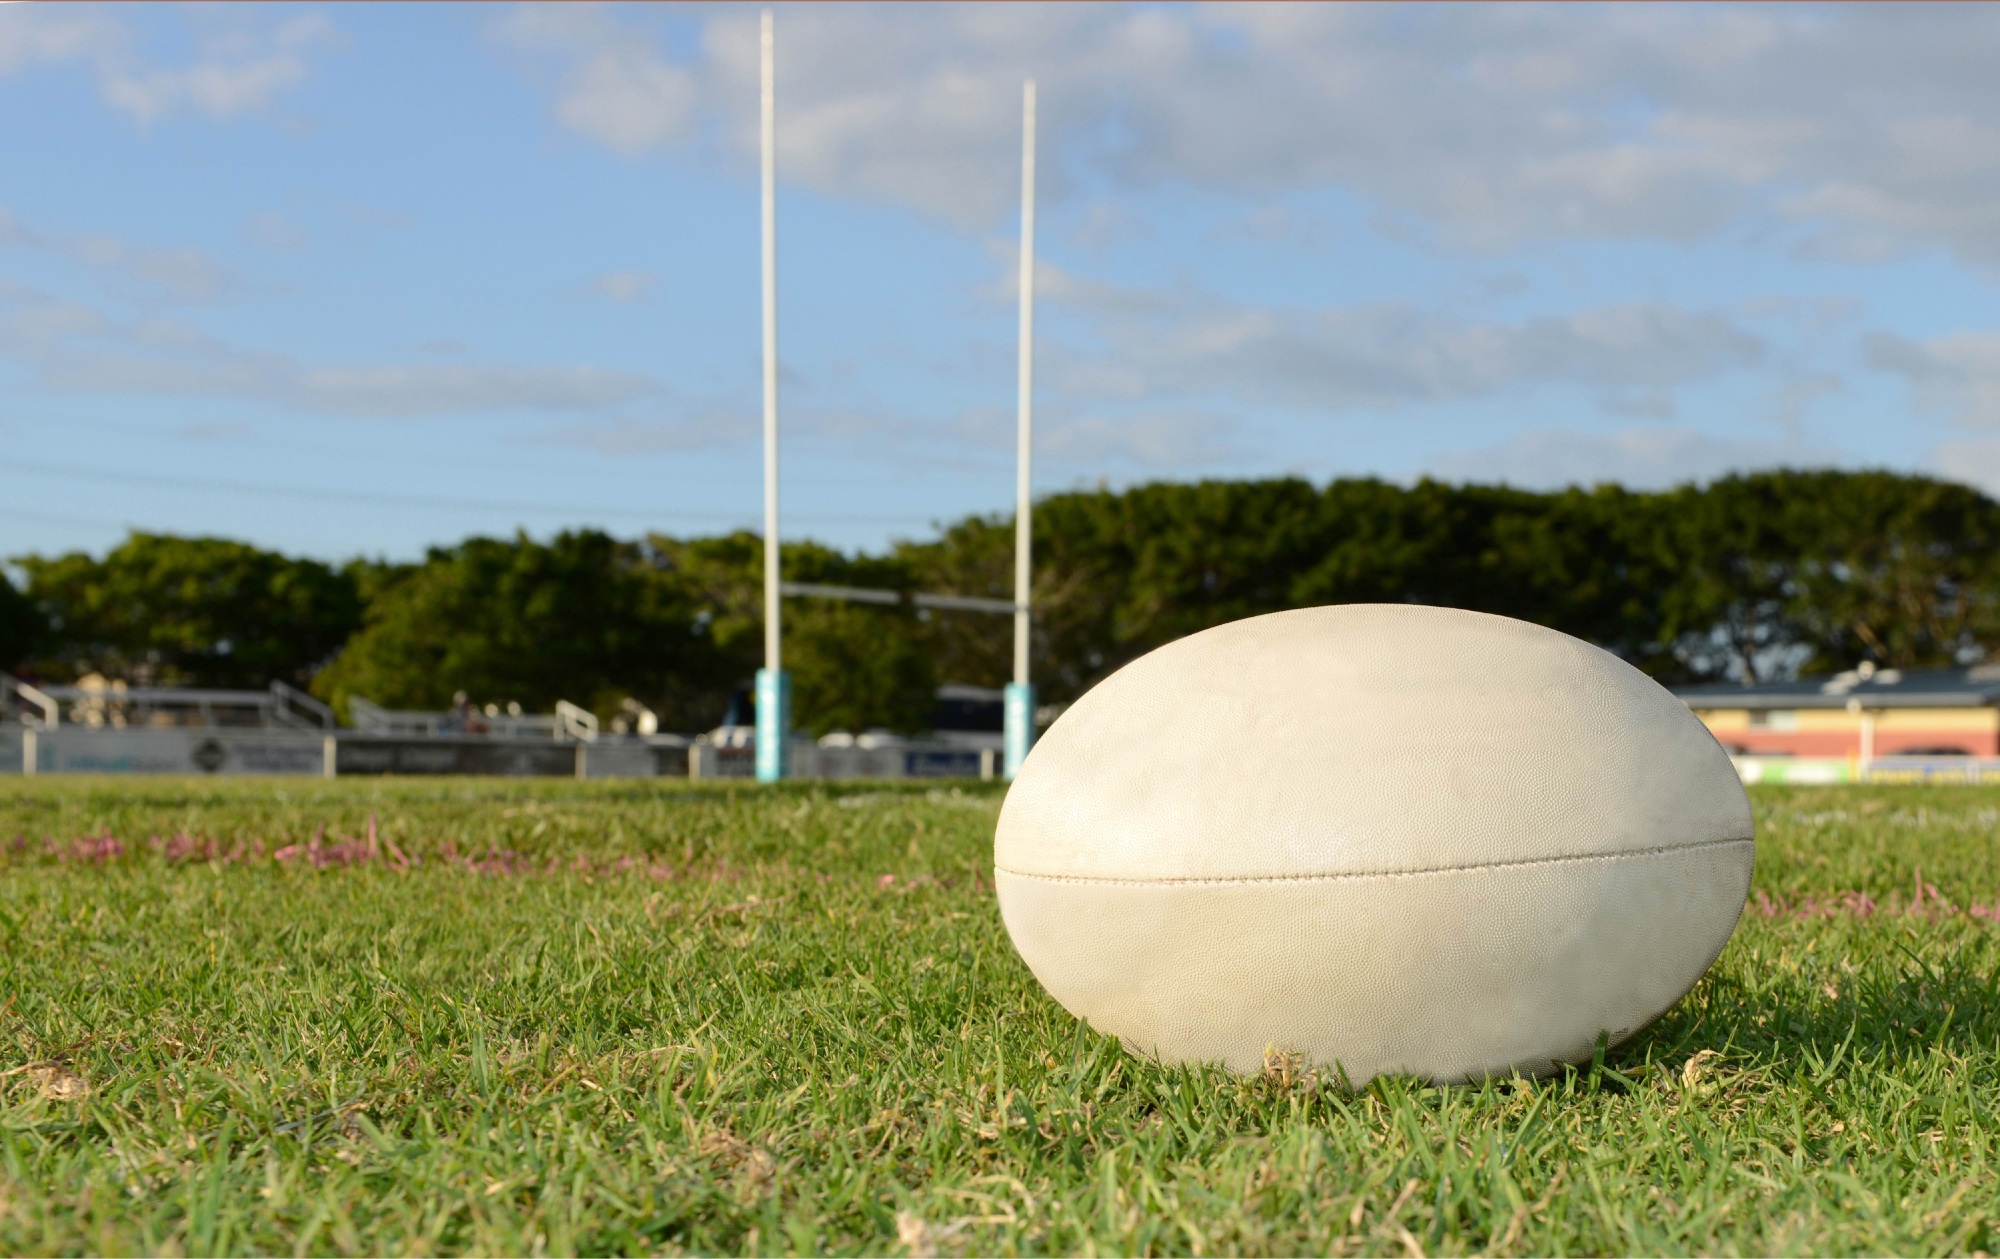 Rugby Union: Rockingham extends unbeaten streak